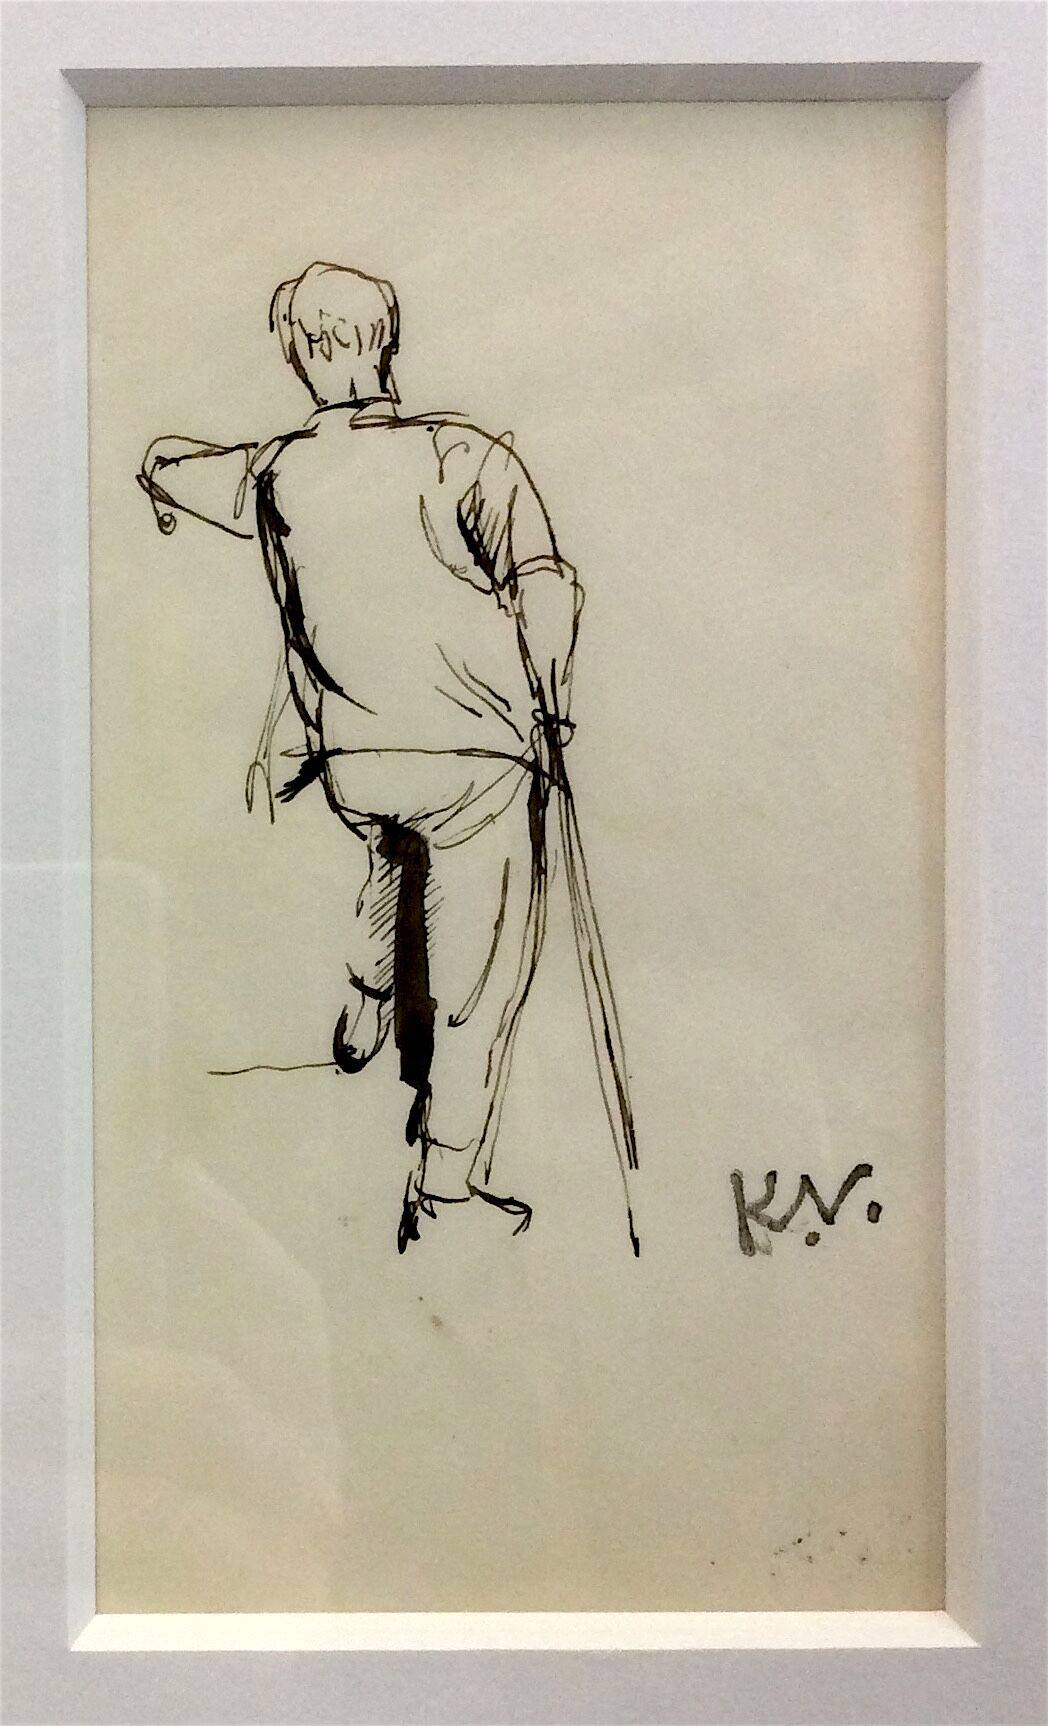 Lot 56 - KEITH VAUGHAN [1912-77]. Standing Figure, c. 1941. ink drawing, signed with studio stamp initials.